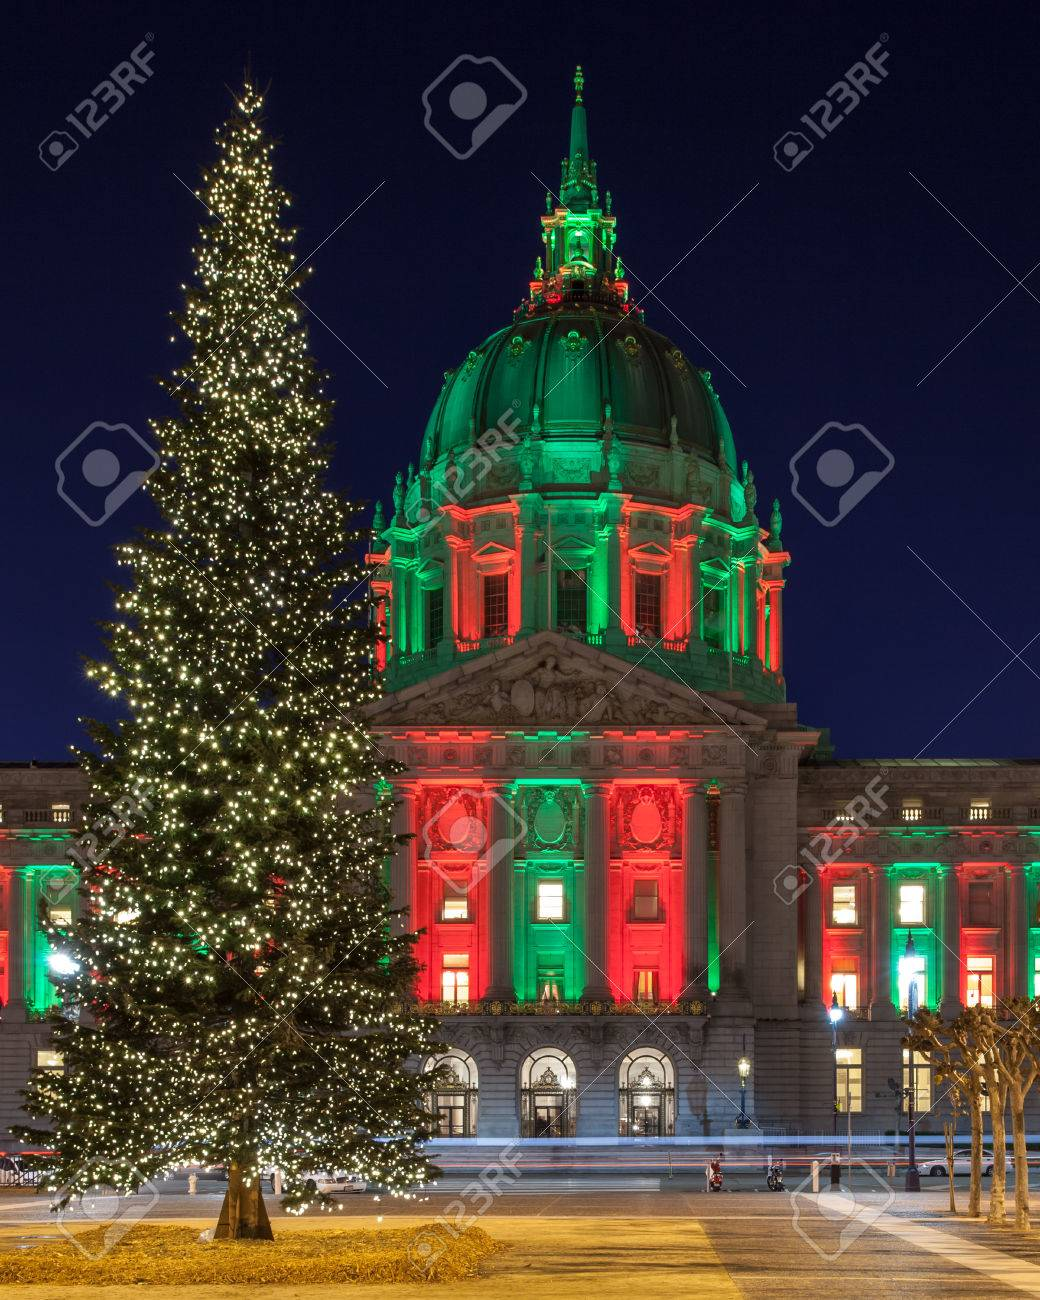 Christmas In San Francisco.San Francisco City Hall In Red And Green Light And A Christmas